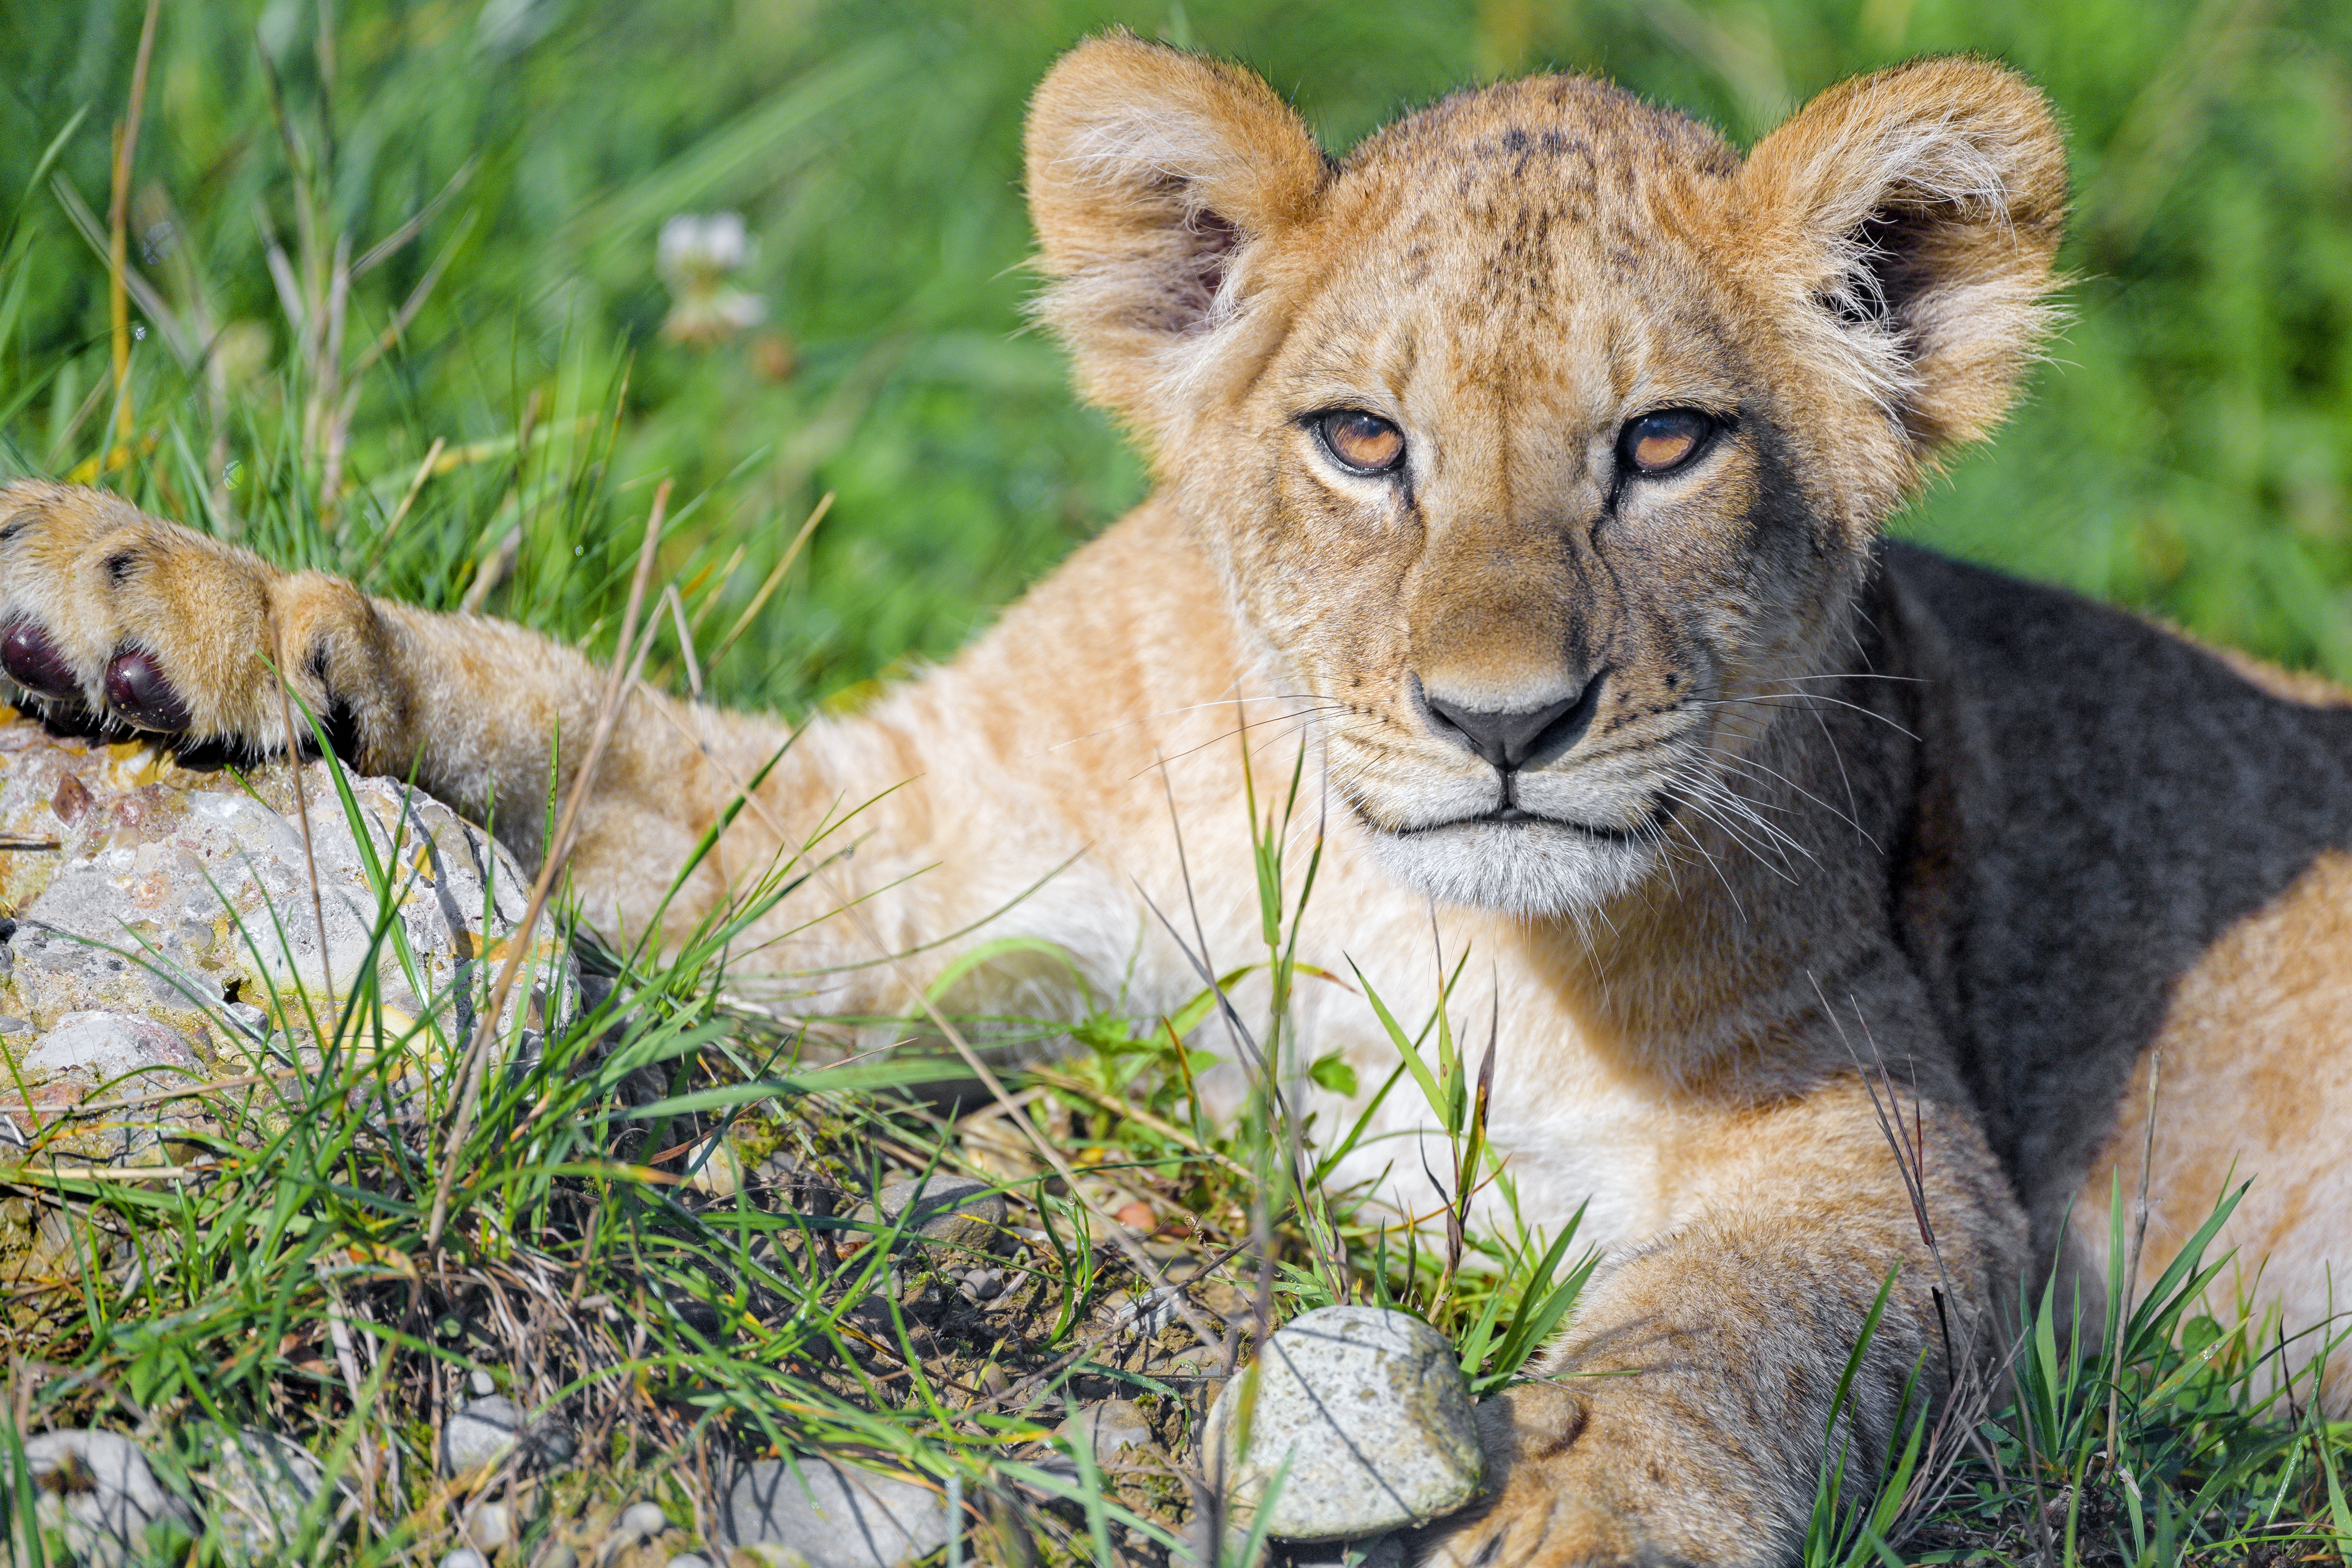 126470 download wallpaper Animals, Lion Cub, Lion, Young, Joey, Sight, Opinion, Predator, Cat screensavers and pictures for free